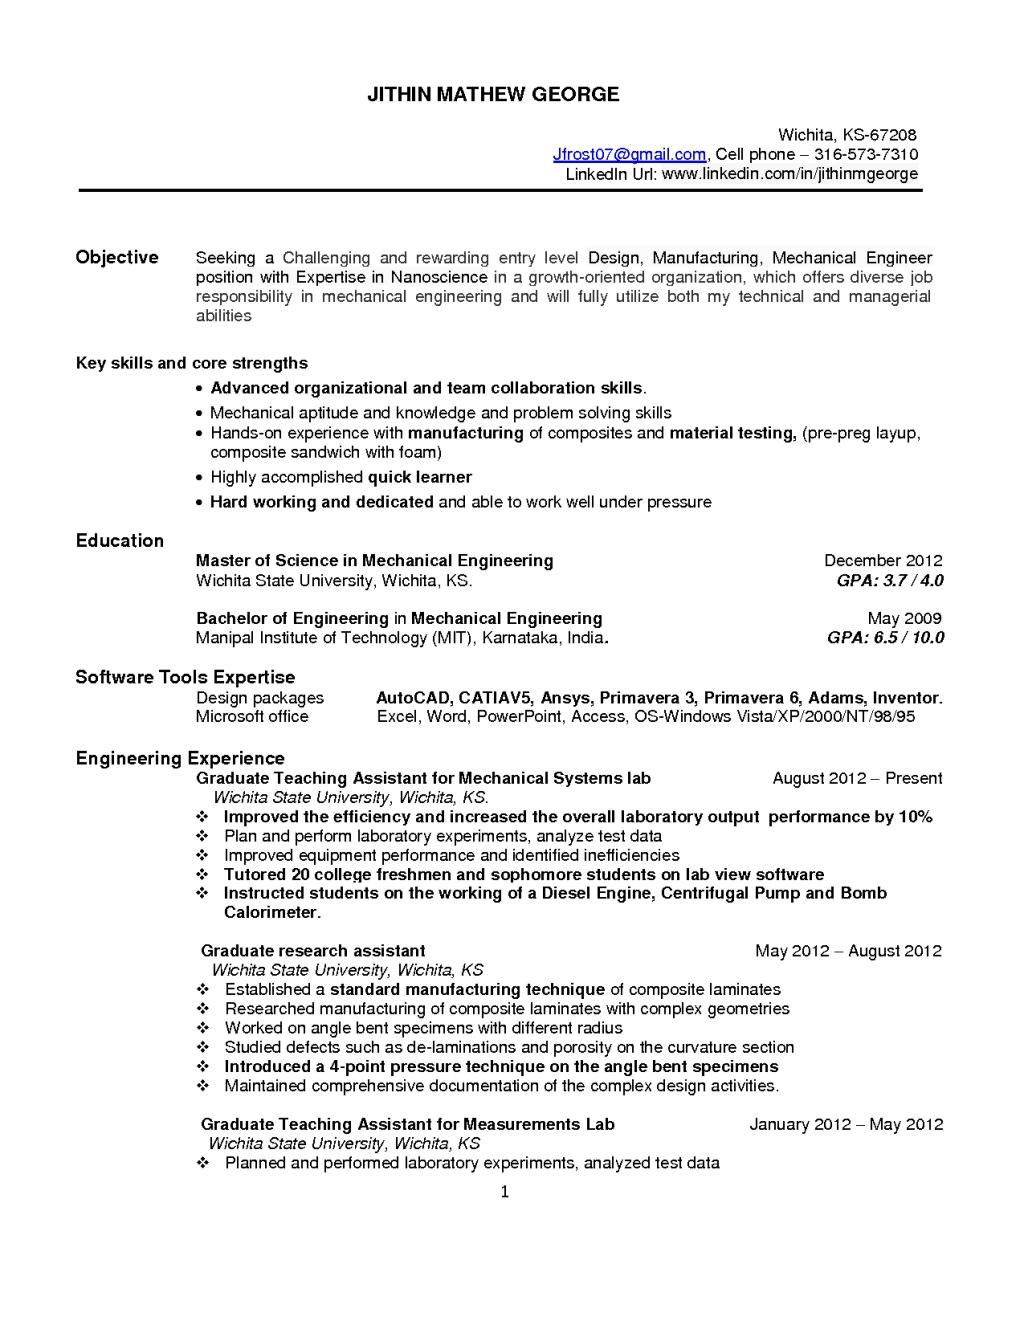 95 Great Entry Level Software Engineer Resume by Gallery